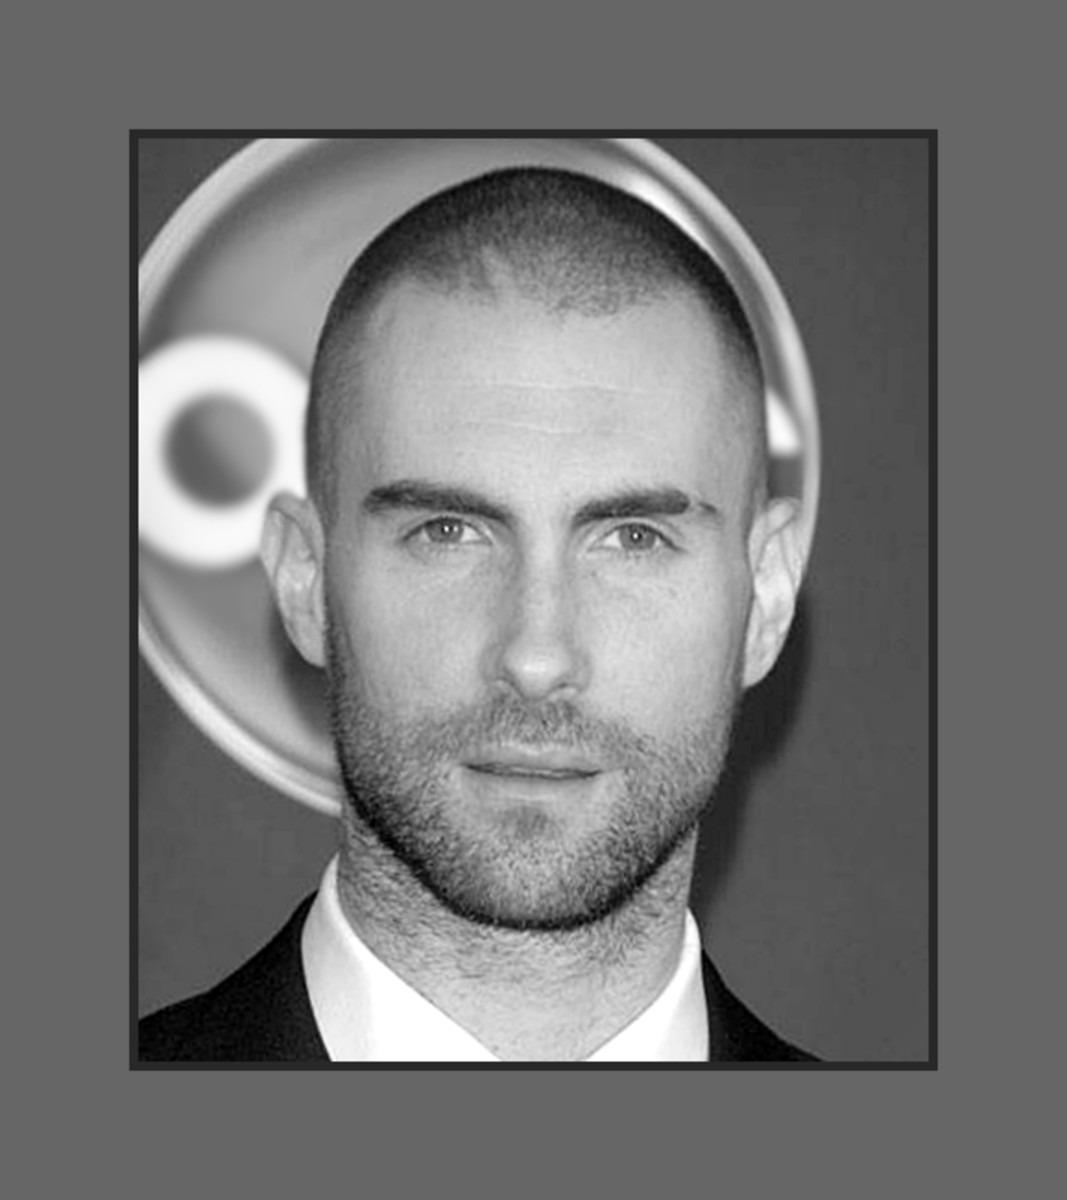 Adam Levine turned to buzz cut for change.  His awesome hairline is receding, but that doesn't take away an iota of his sex appeal.  Adam is so cool with his buzz cut. - 2013 Hairstyles for Men with Balding Thinning Hair Style Cuts Trends